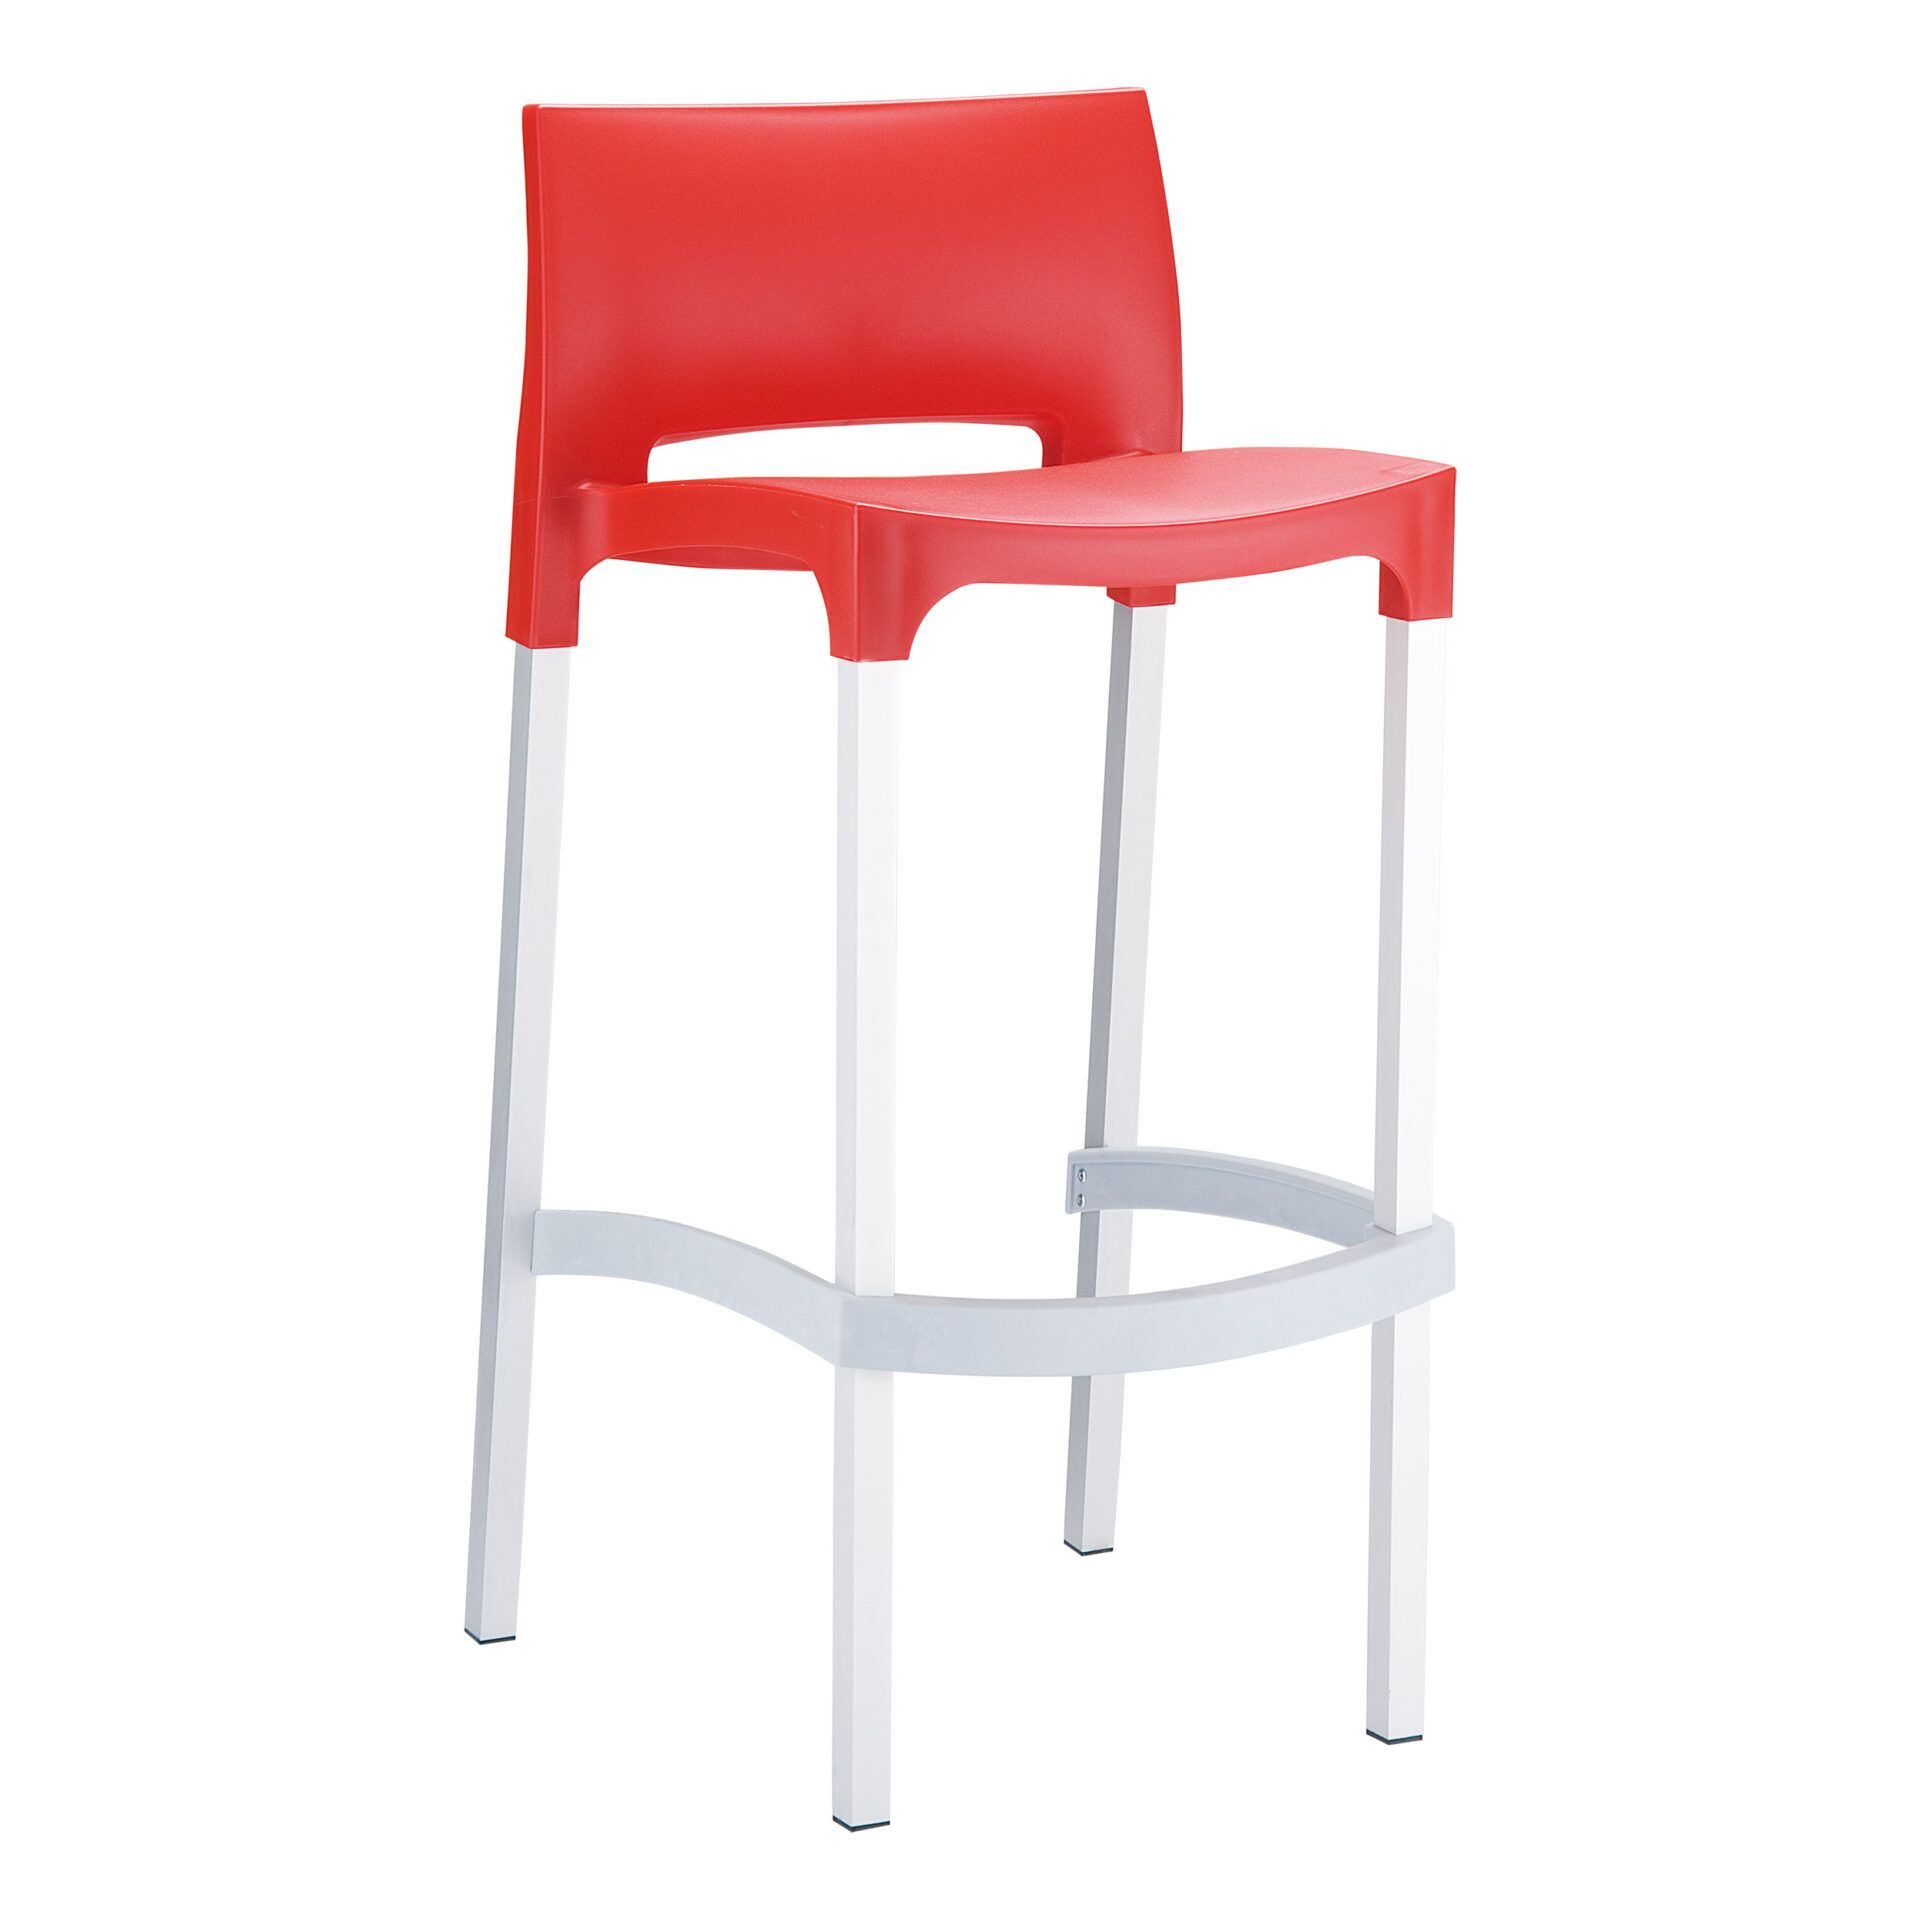 commercial plastic gio barstool red front side